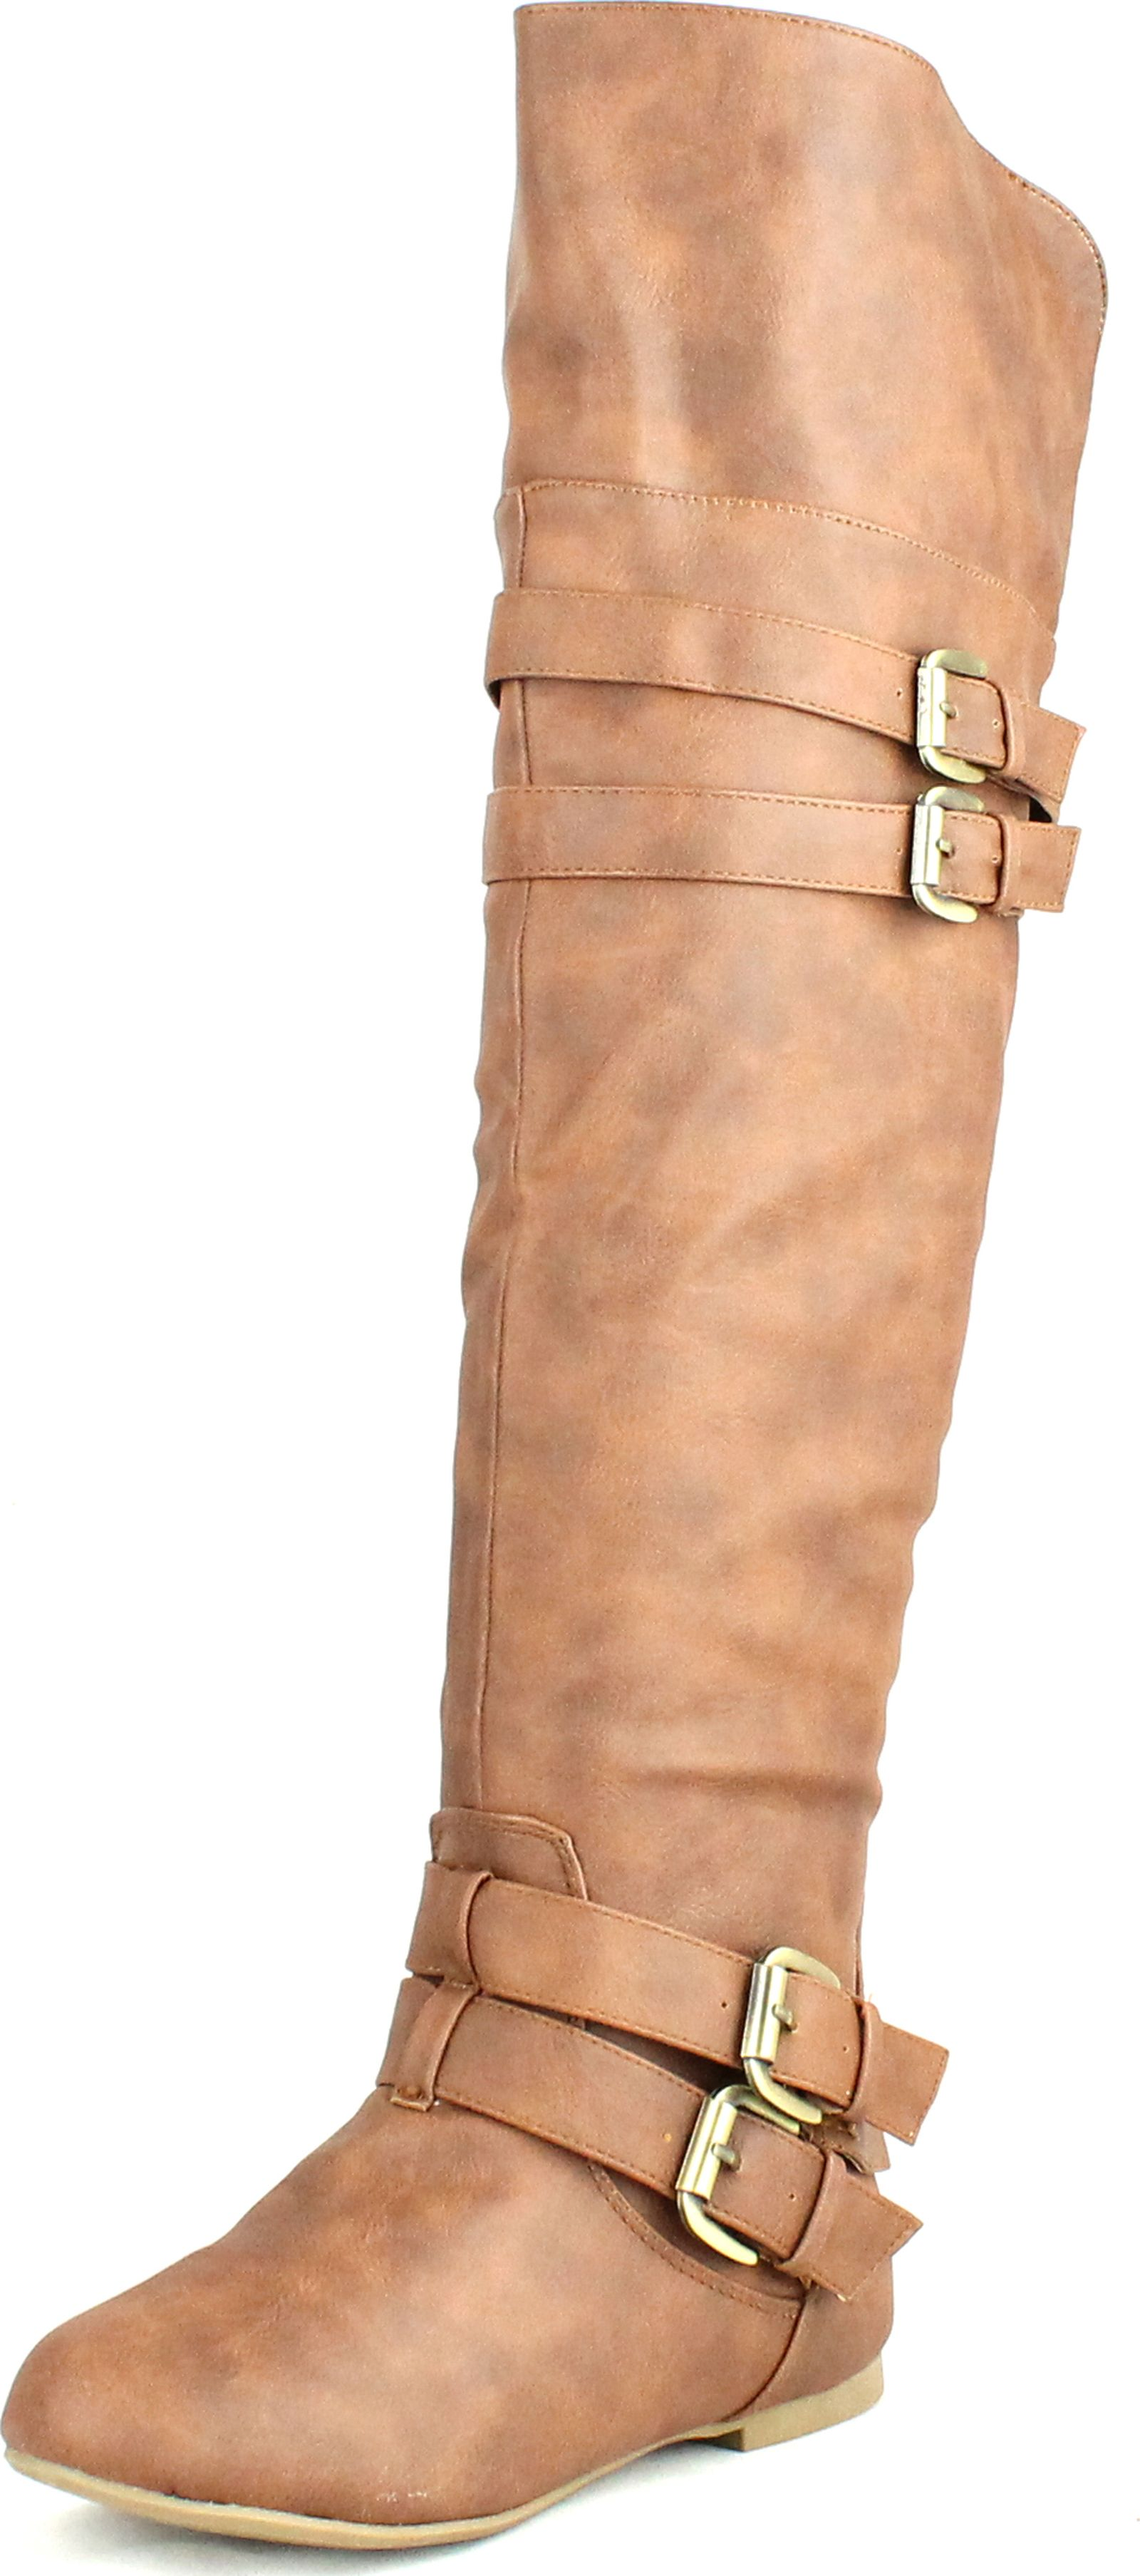 Top Moda Night-79 Women's Round Toe Low Heel Buckle Slouchy Thigh High Boot Shoes at Sears.com